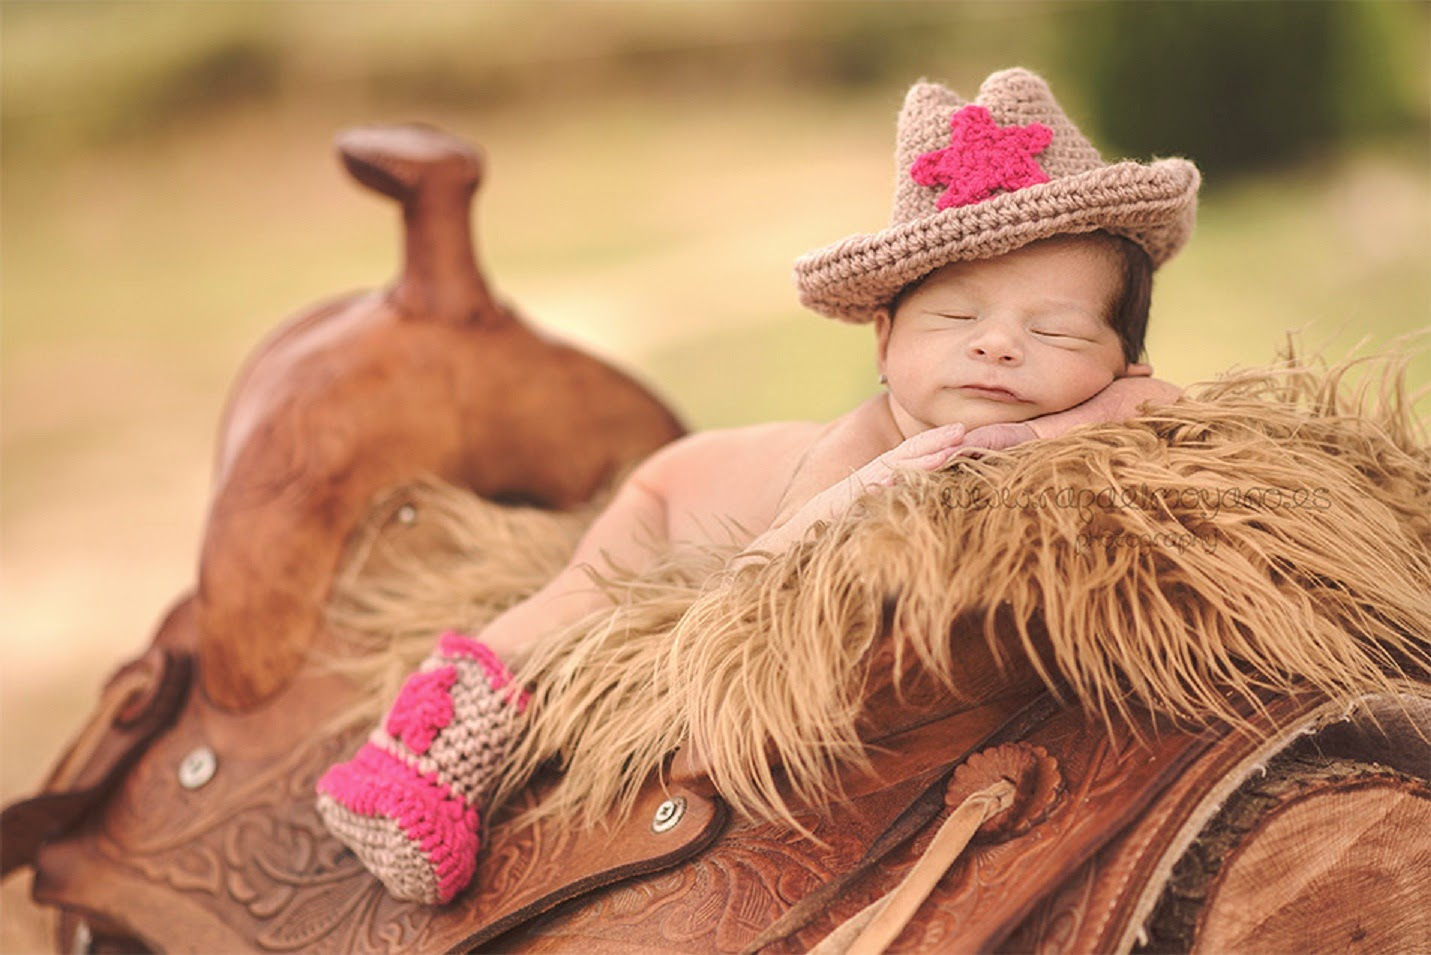 Cowboy-style-baby-photography-image-HD-for-pc.jpg